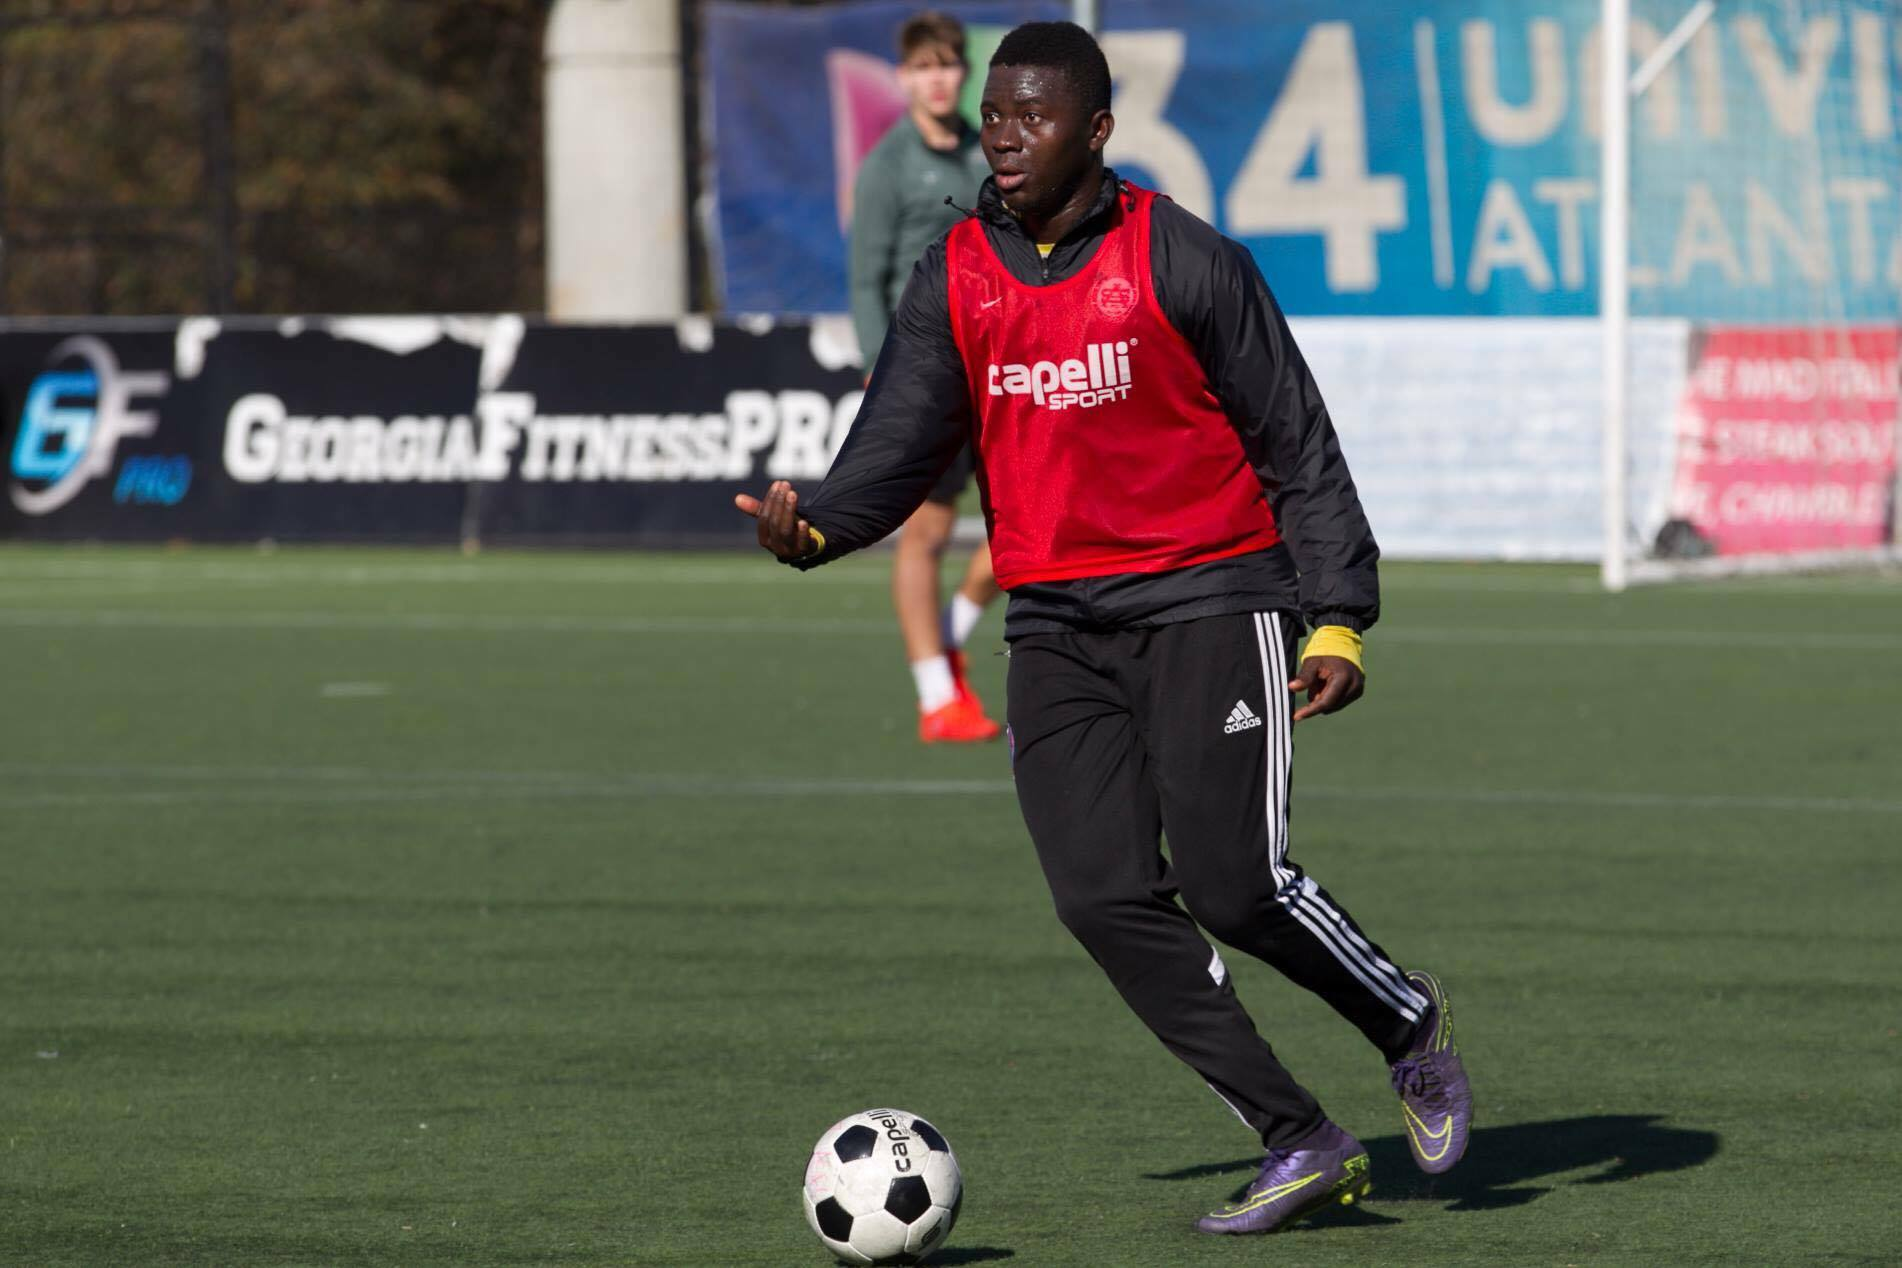 Atlanta Silverbacks skipper Abdul-rahman Bangura returns to training ahead of pre-season